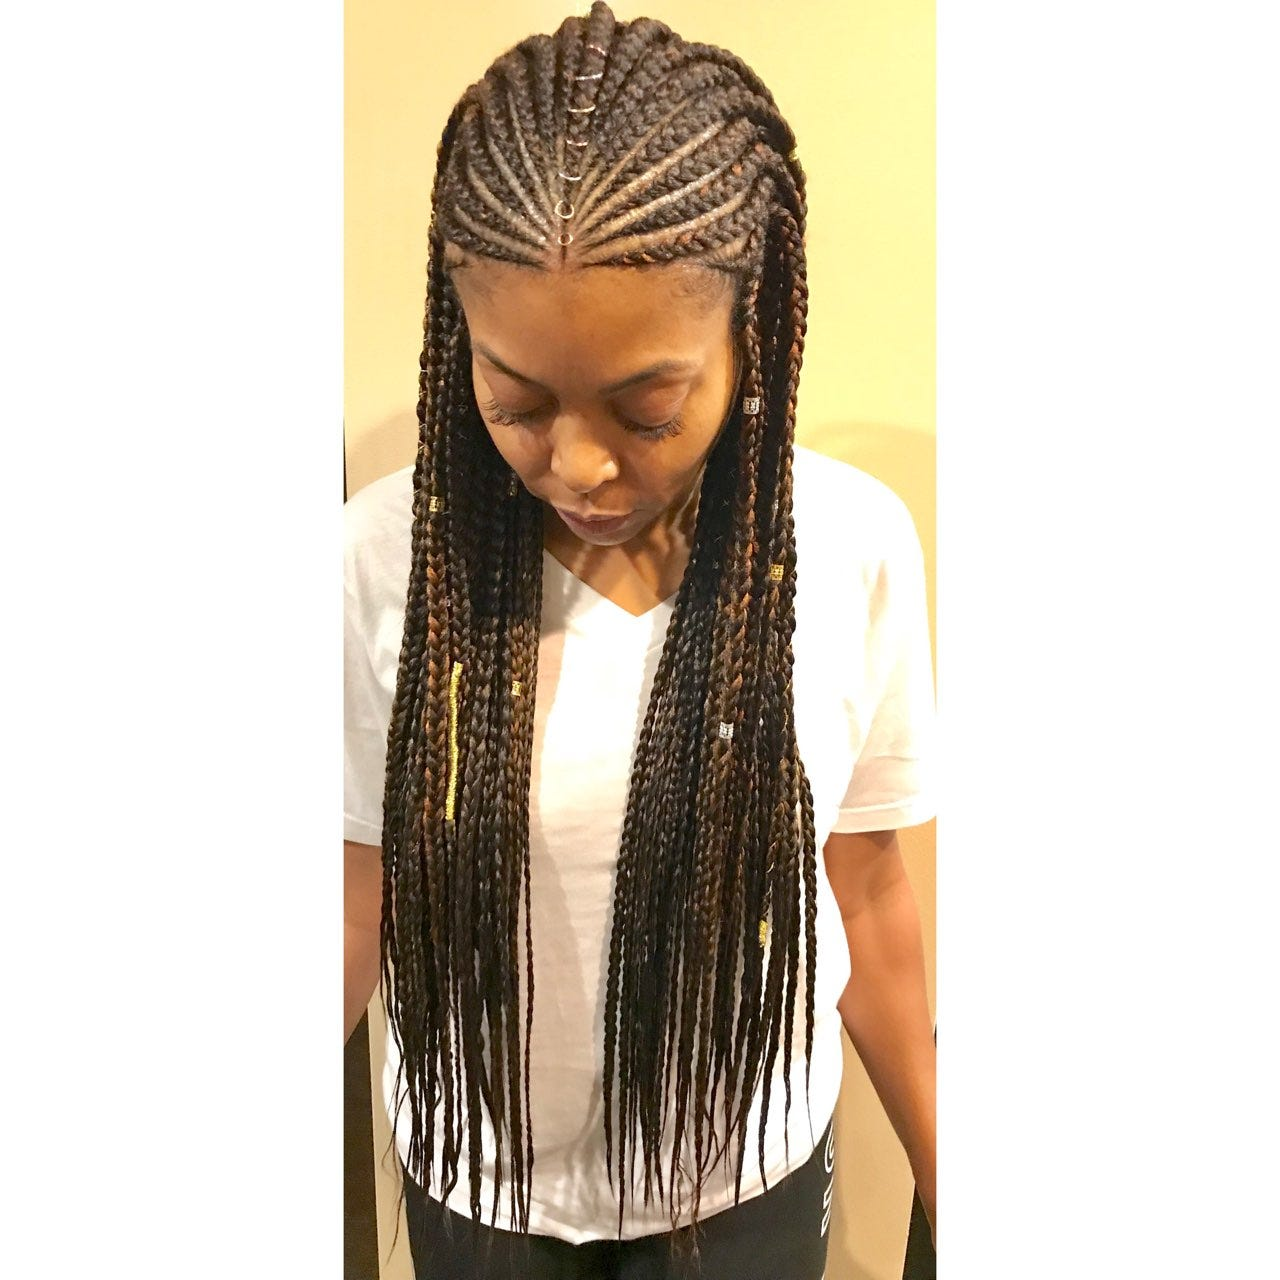 Easy How To Do Box Braids Step By Step